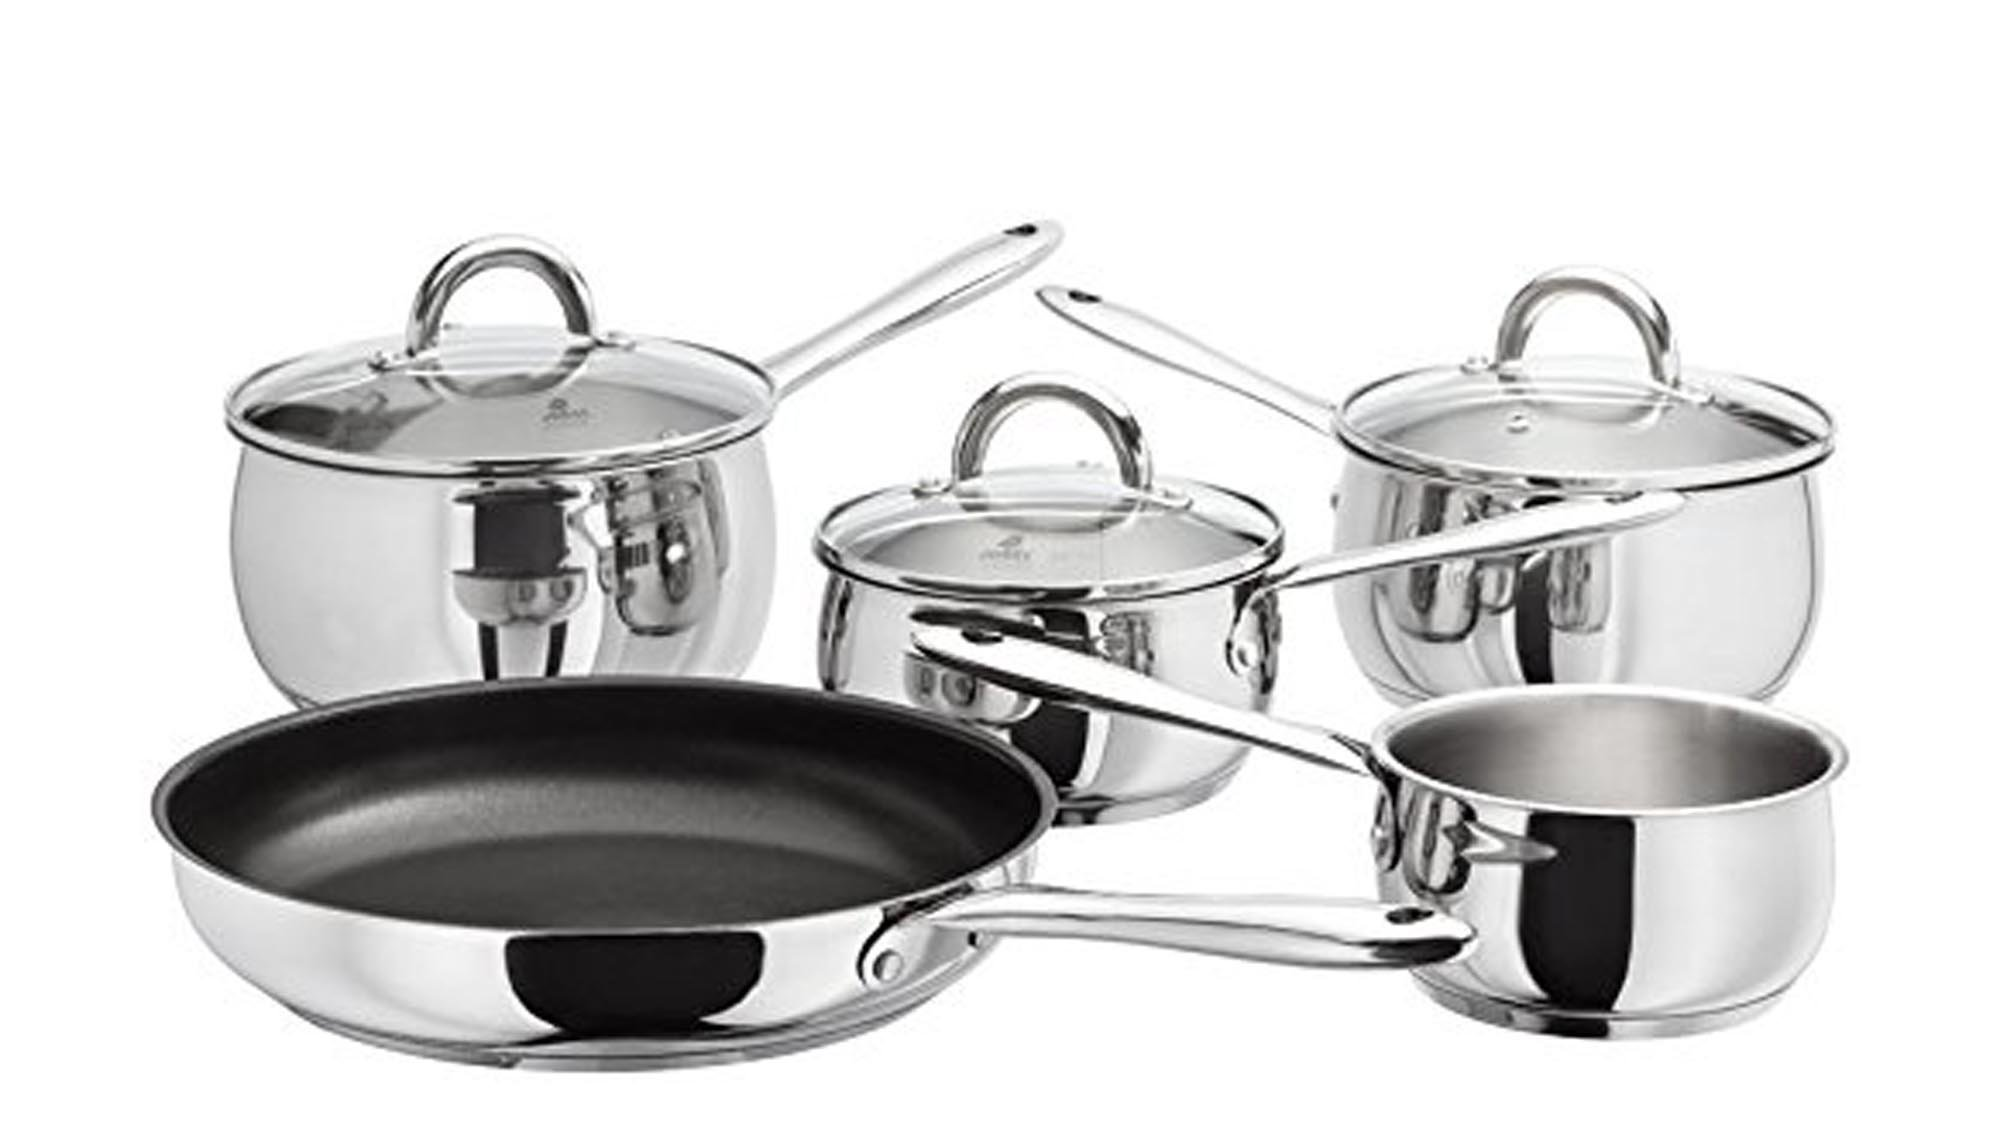 Best Saucepans 2018 Cook Up A Storm With The Best Pan Sets From 60